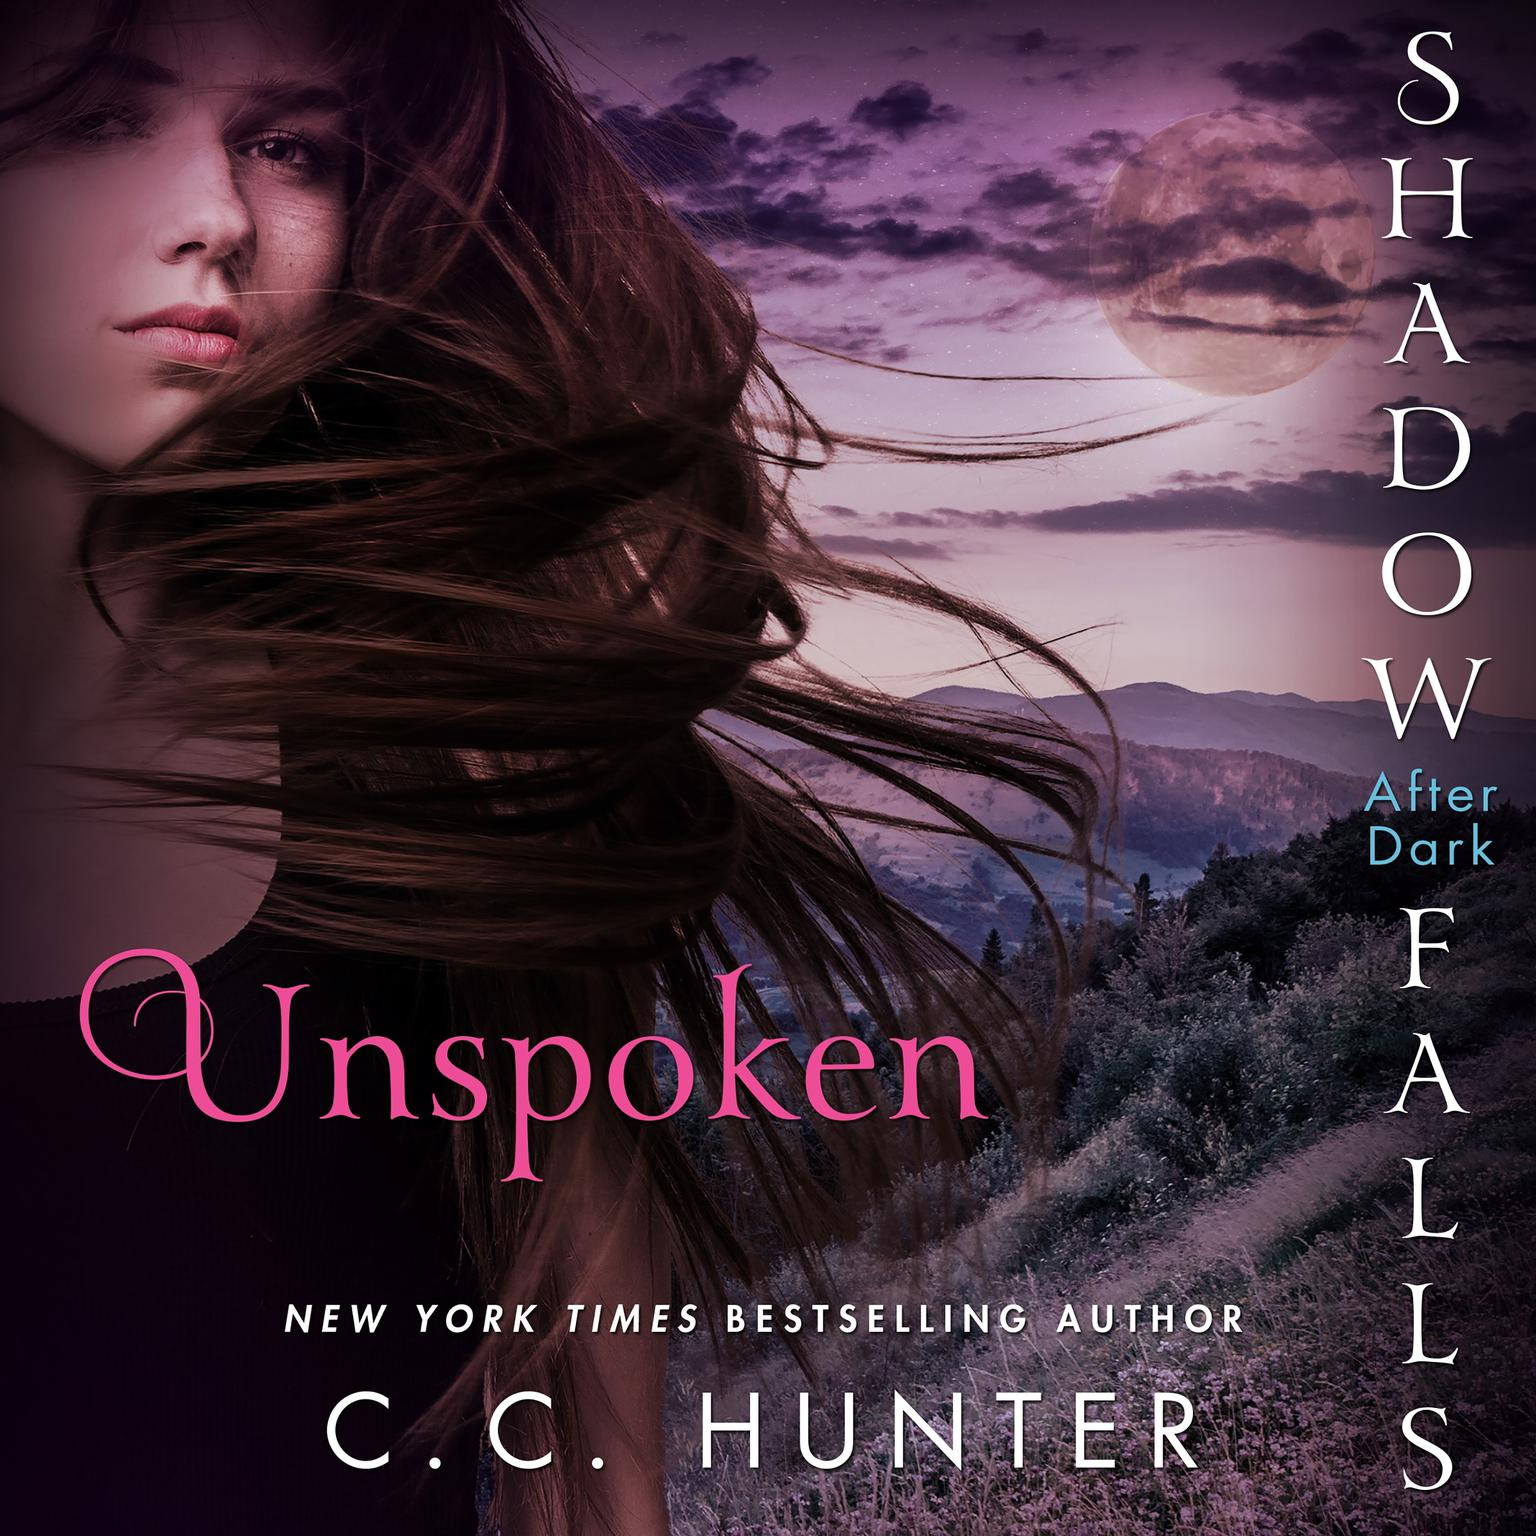 Printable Unspoken: Shadow Falls: After Dark Audiobook Cover Art